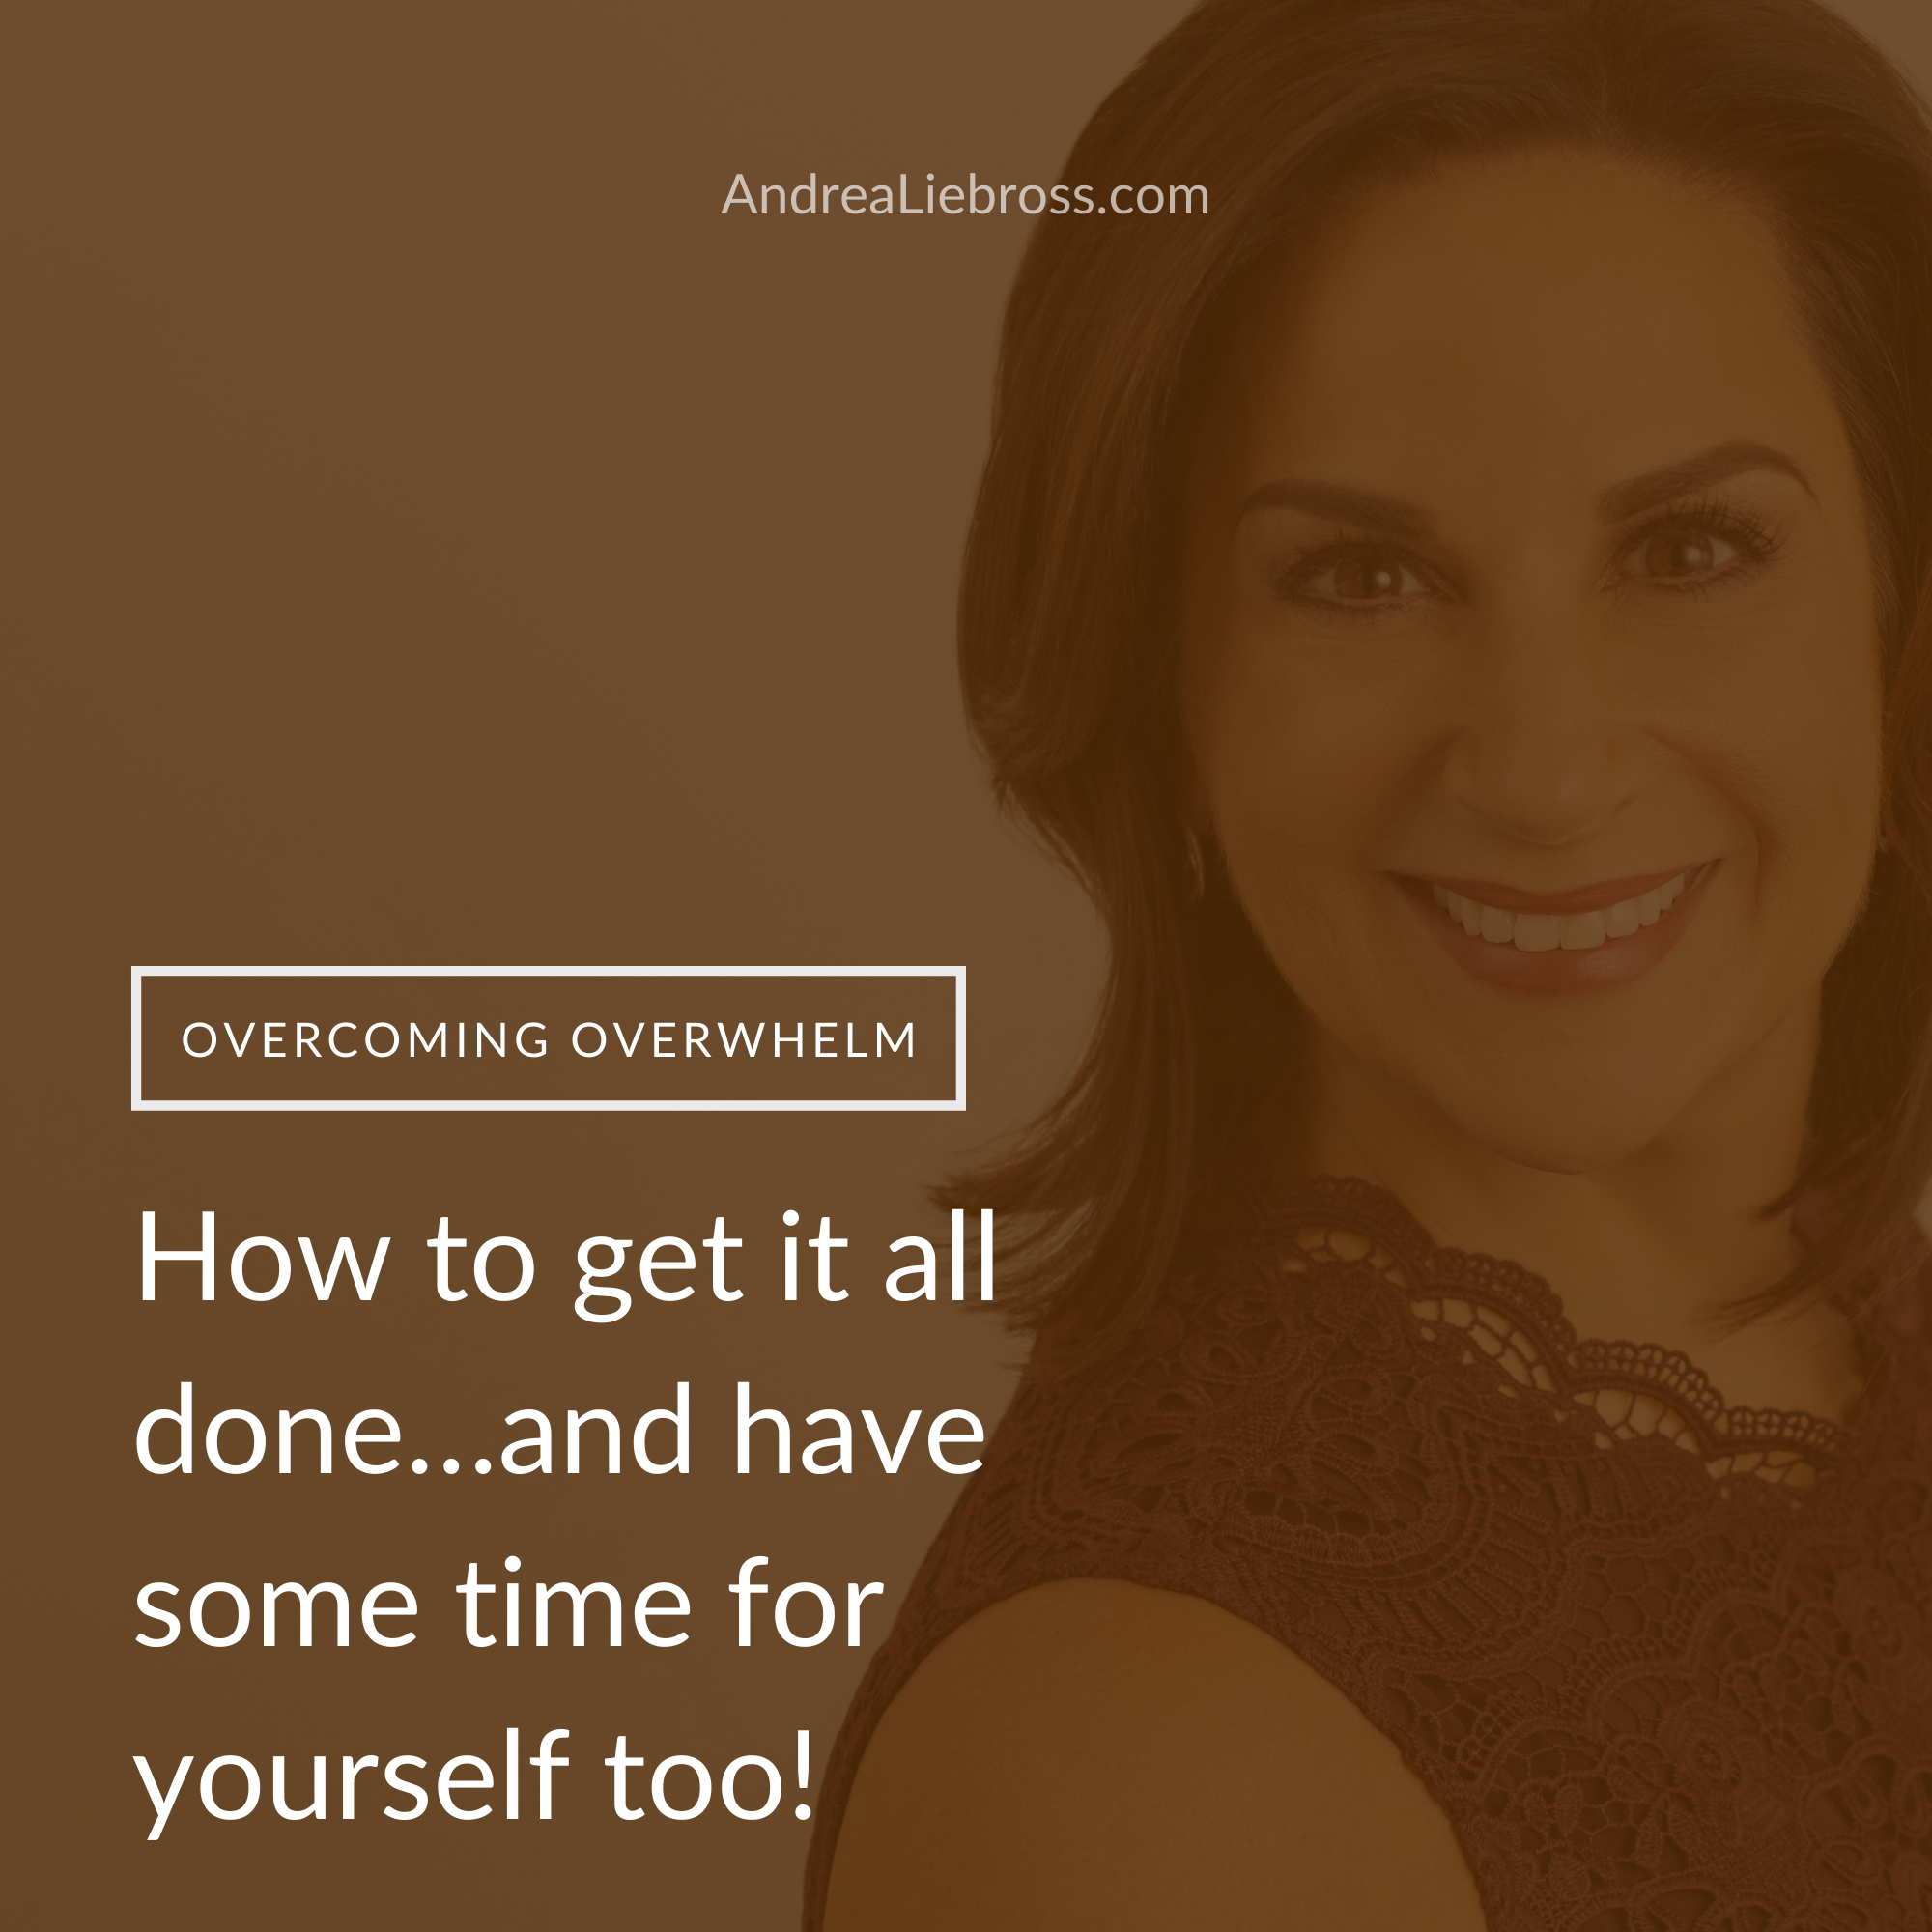 How to get it all done…and have some time for yourself too!